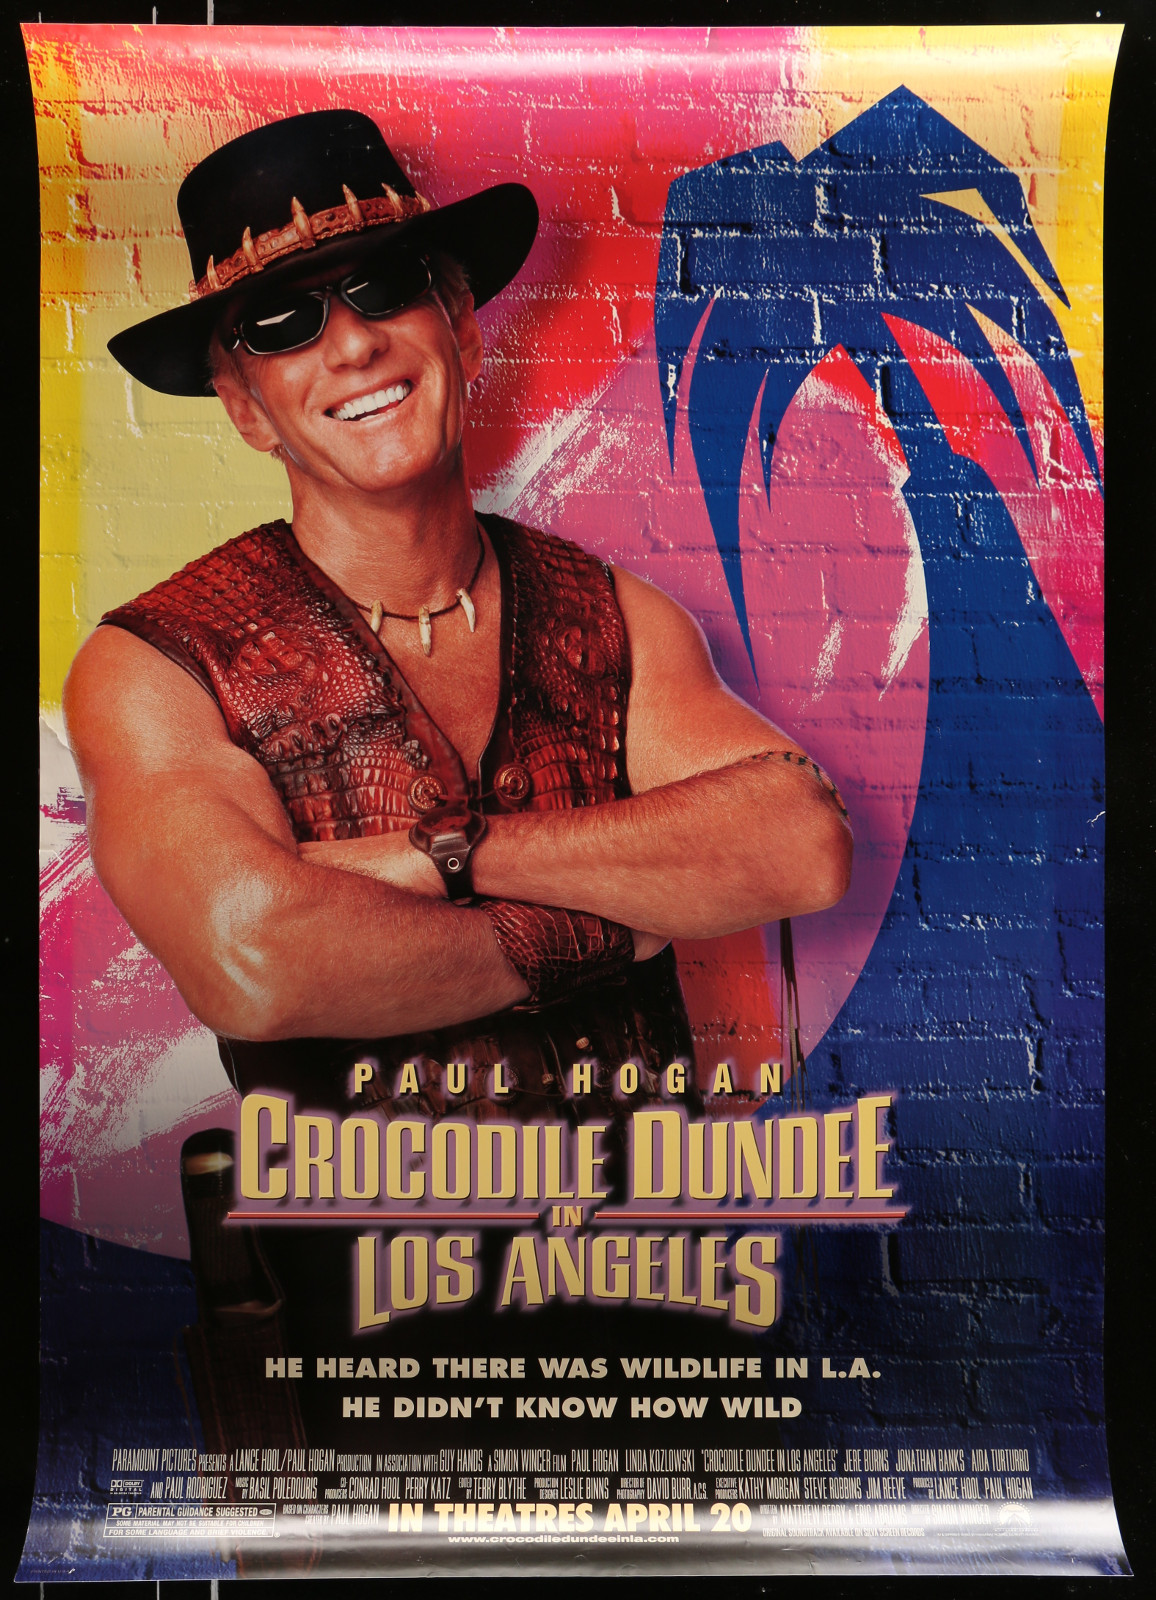 Crocodile Dundee In Los Angeles 2A413 A Part Of A Lot 20 Unfolded Mostly Double-Sided 27X40 One-Sheets '90S-00S Great Movie Images!